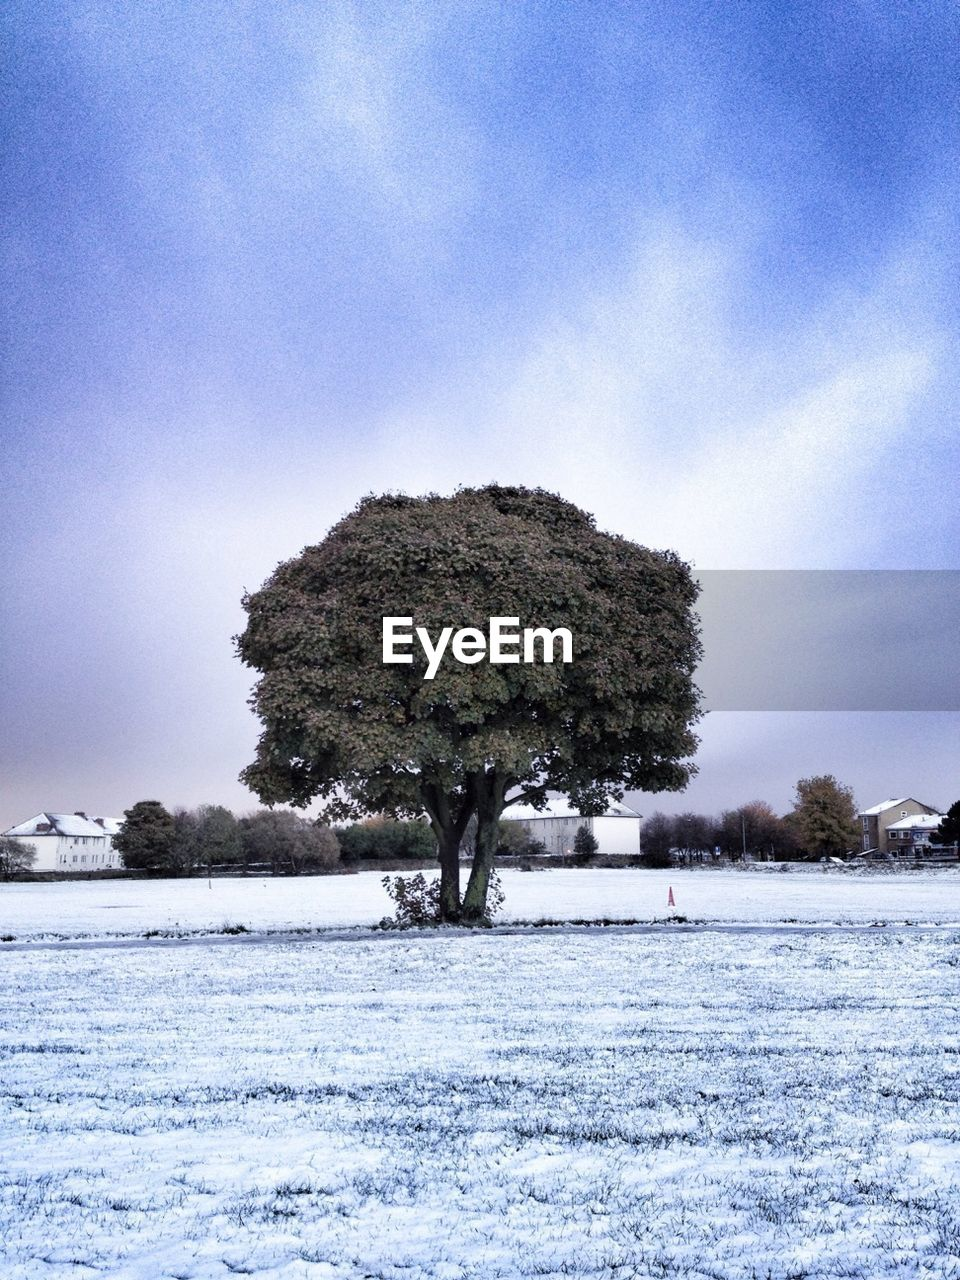 winter, snow, cold temperature, tree, landscape, nature, weather, cold, tranquil scene, tranquility, beauty in nature, solitude, frozen, scenics, outdoors, lone, field, day, sky, no people